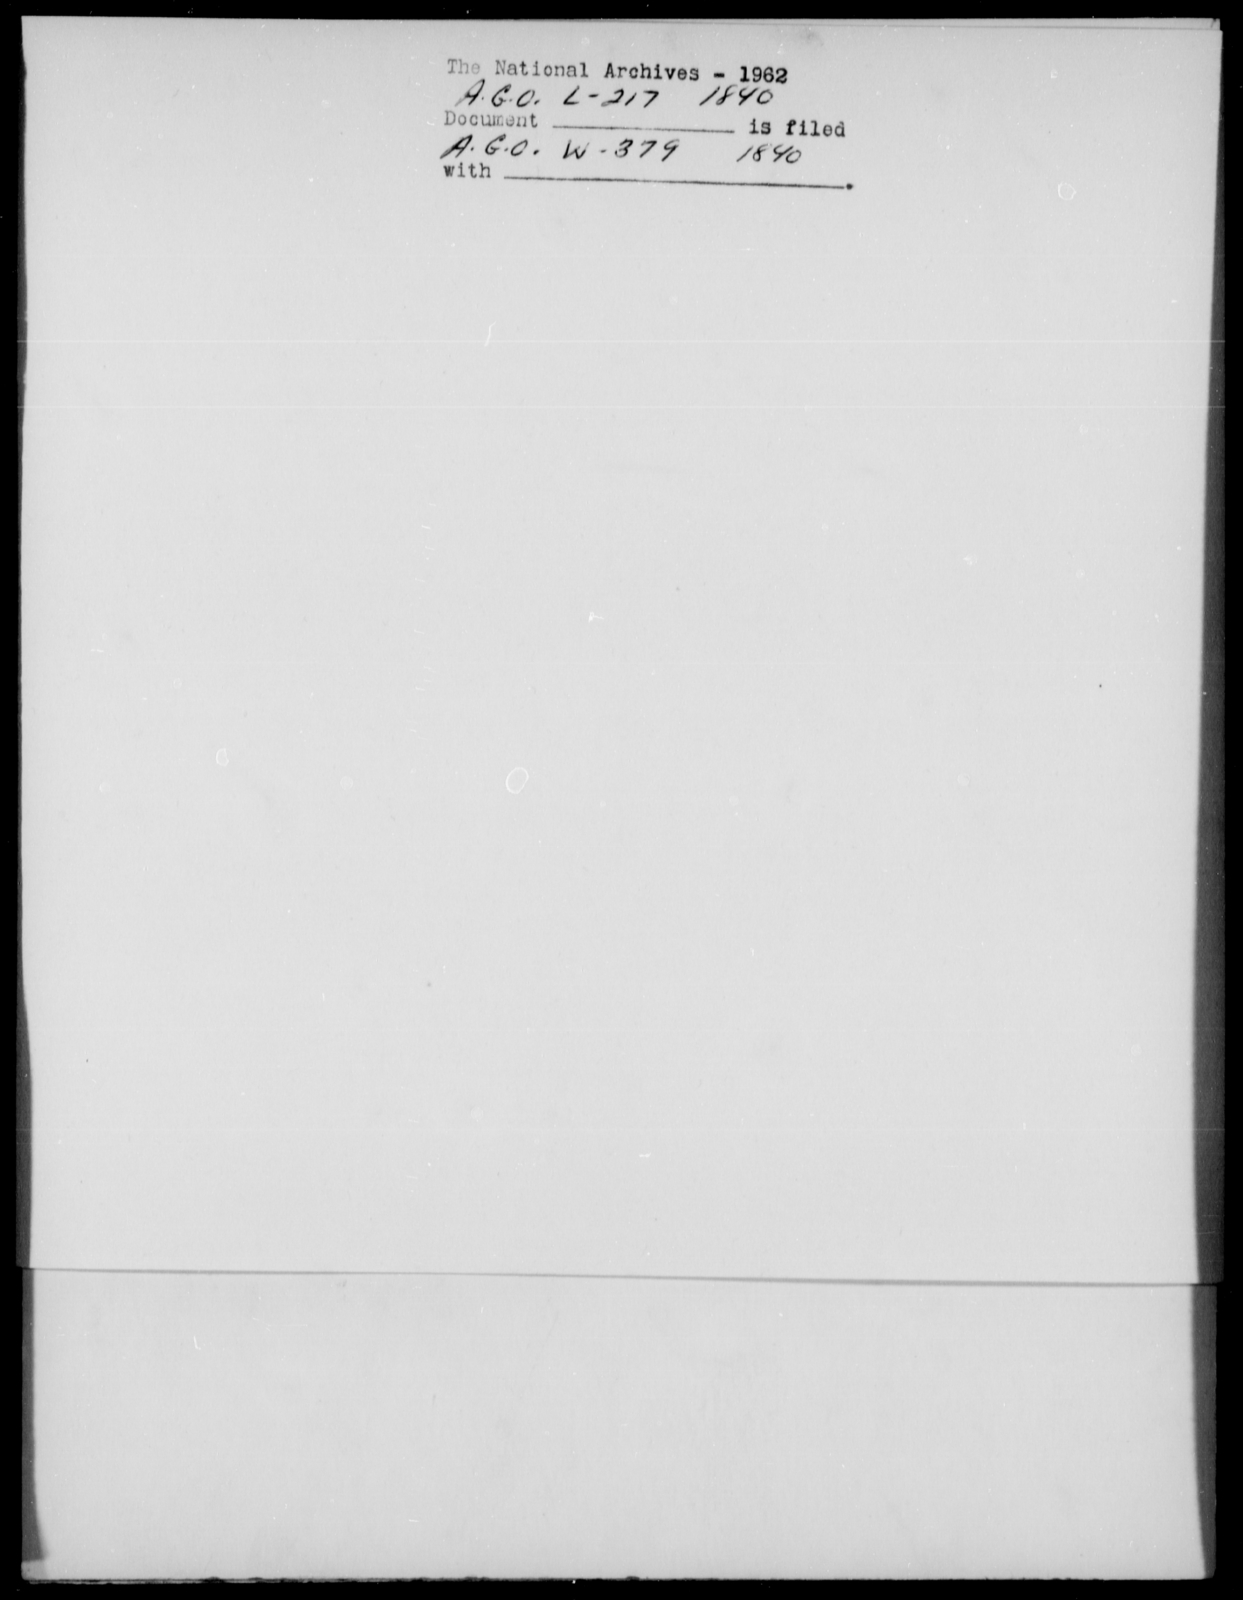 Lawson, Thos - State: [Blank] - Year: 1840 - File Number: L217